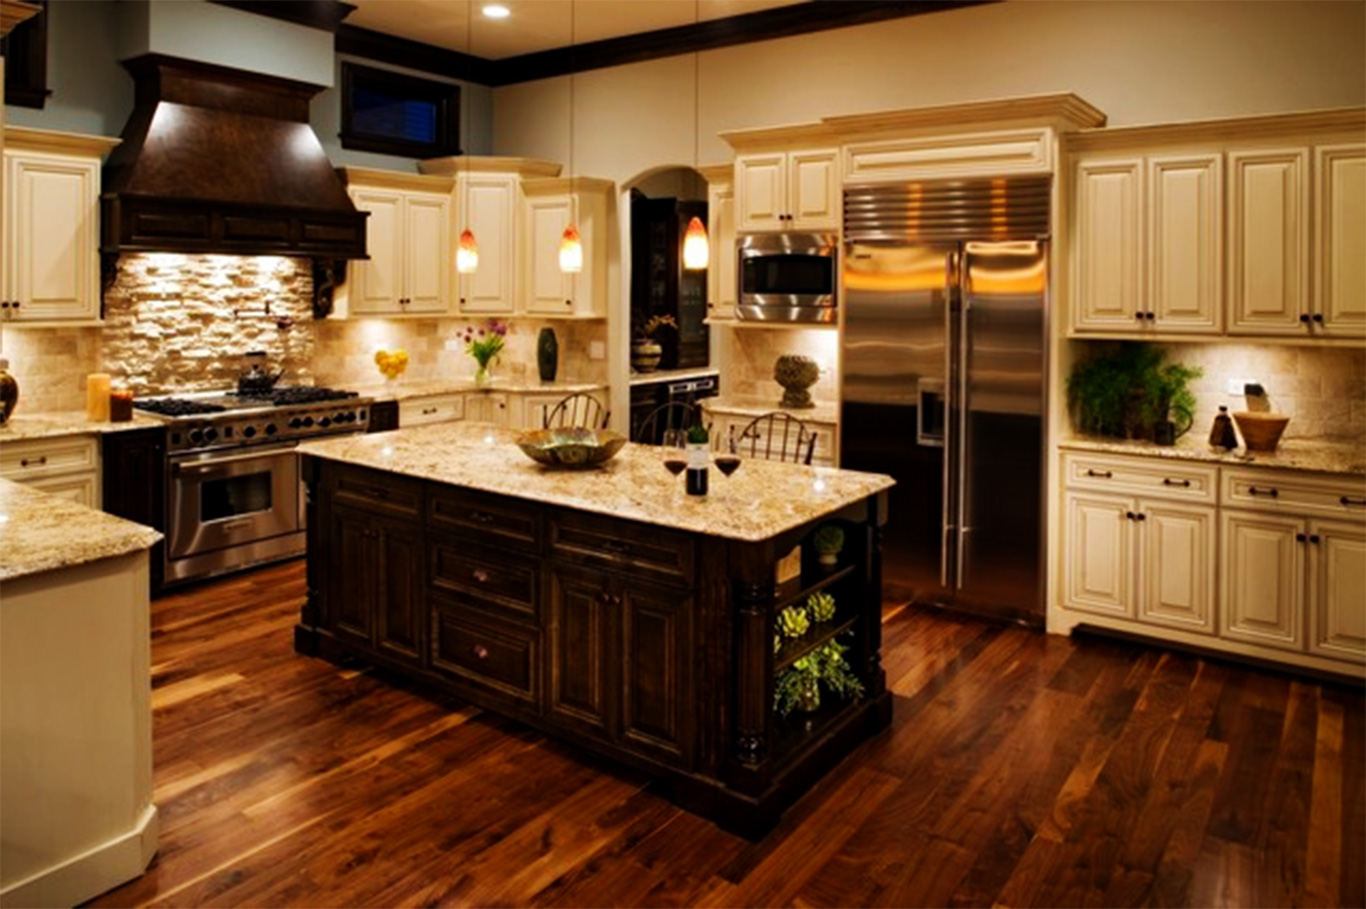 11 awesome type of kitchen design ideas Www house kitchen design